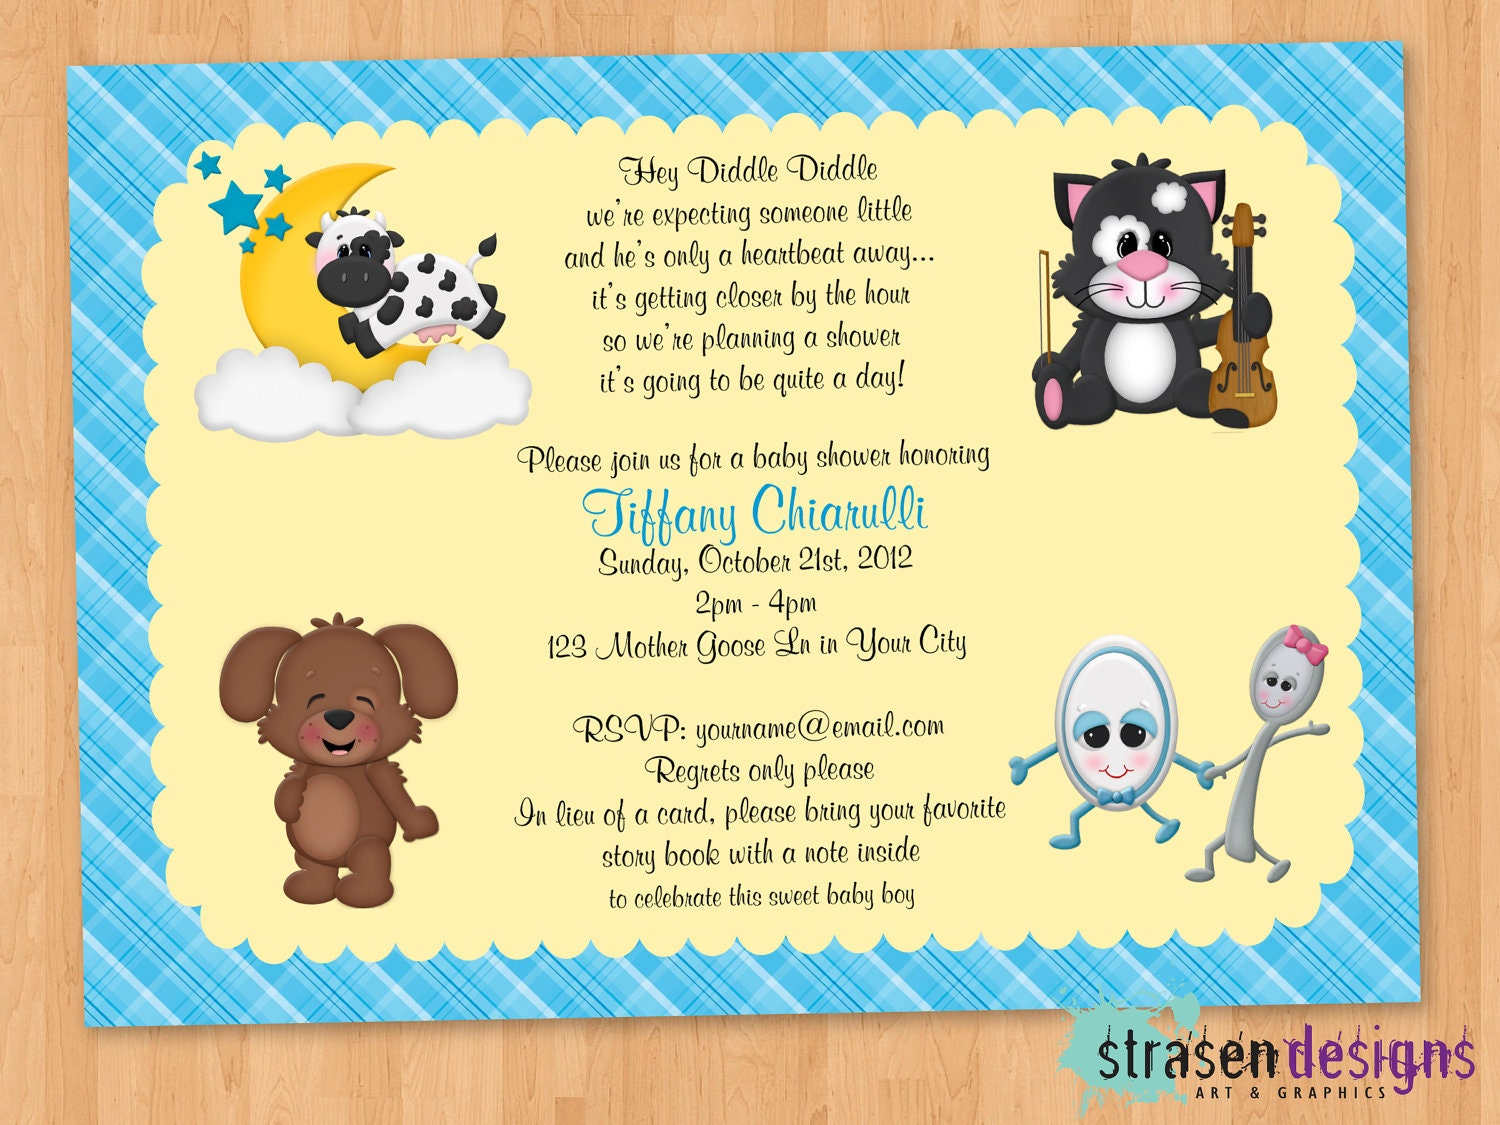 Baby Shower Rhyme Invite for adorable invitations ideas